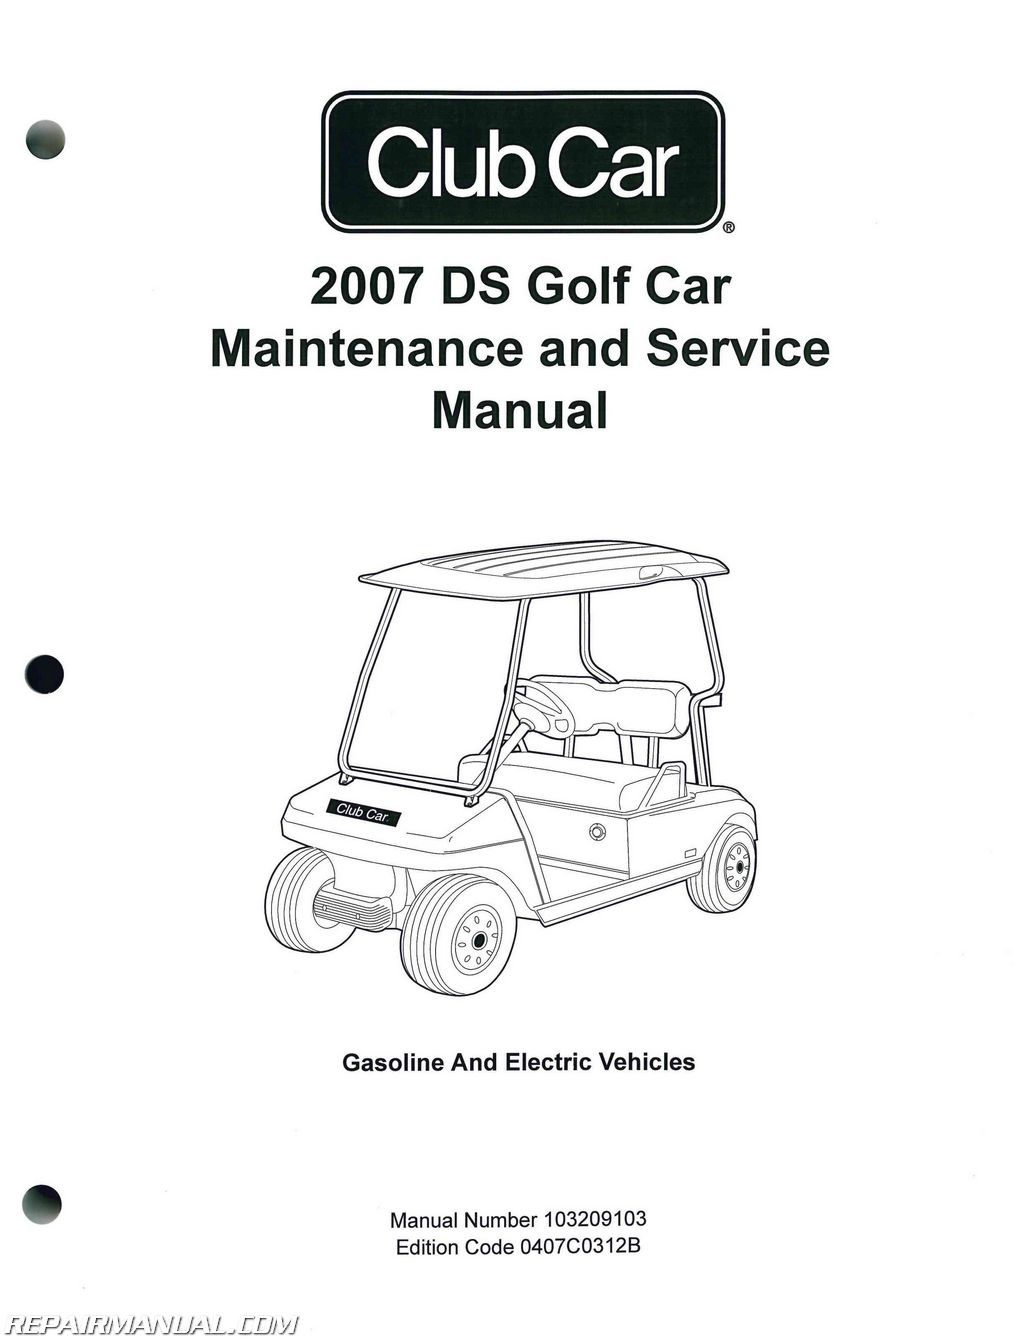 1988 Ezgo Golf Cart Parts Diagram Electrical Wiring 1987 Ezgo Marathon Wiring Diagram Club Car Manuals And Diagrams Trusted U2022 Rh Soulmatestyle Co